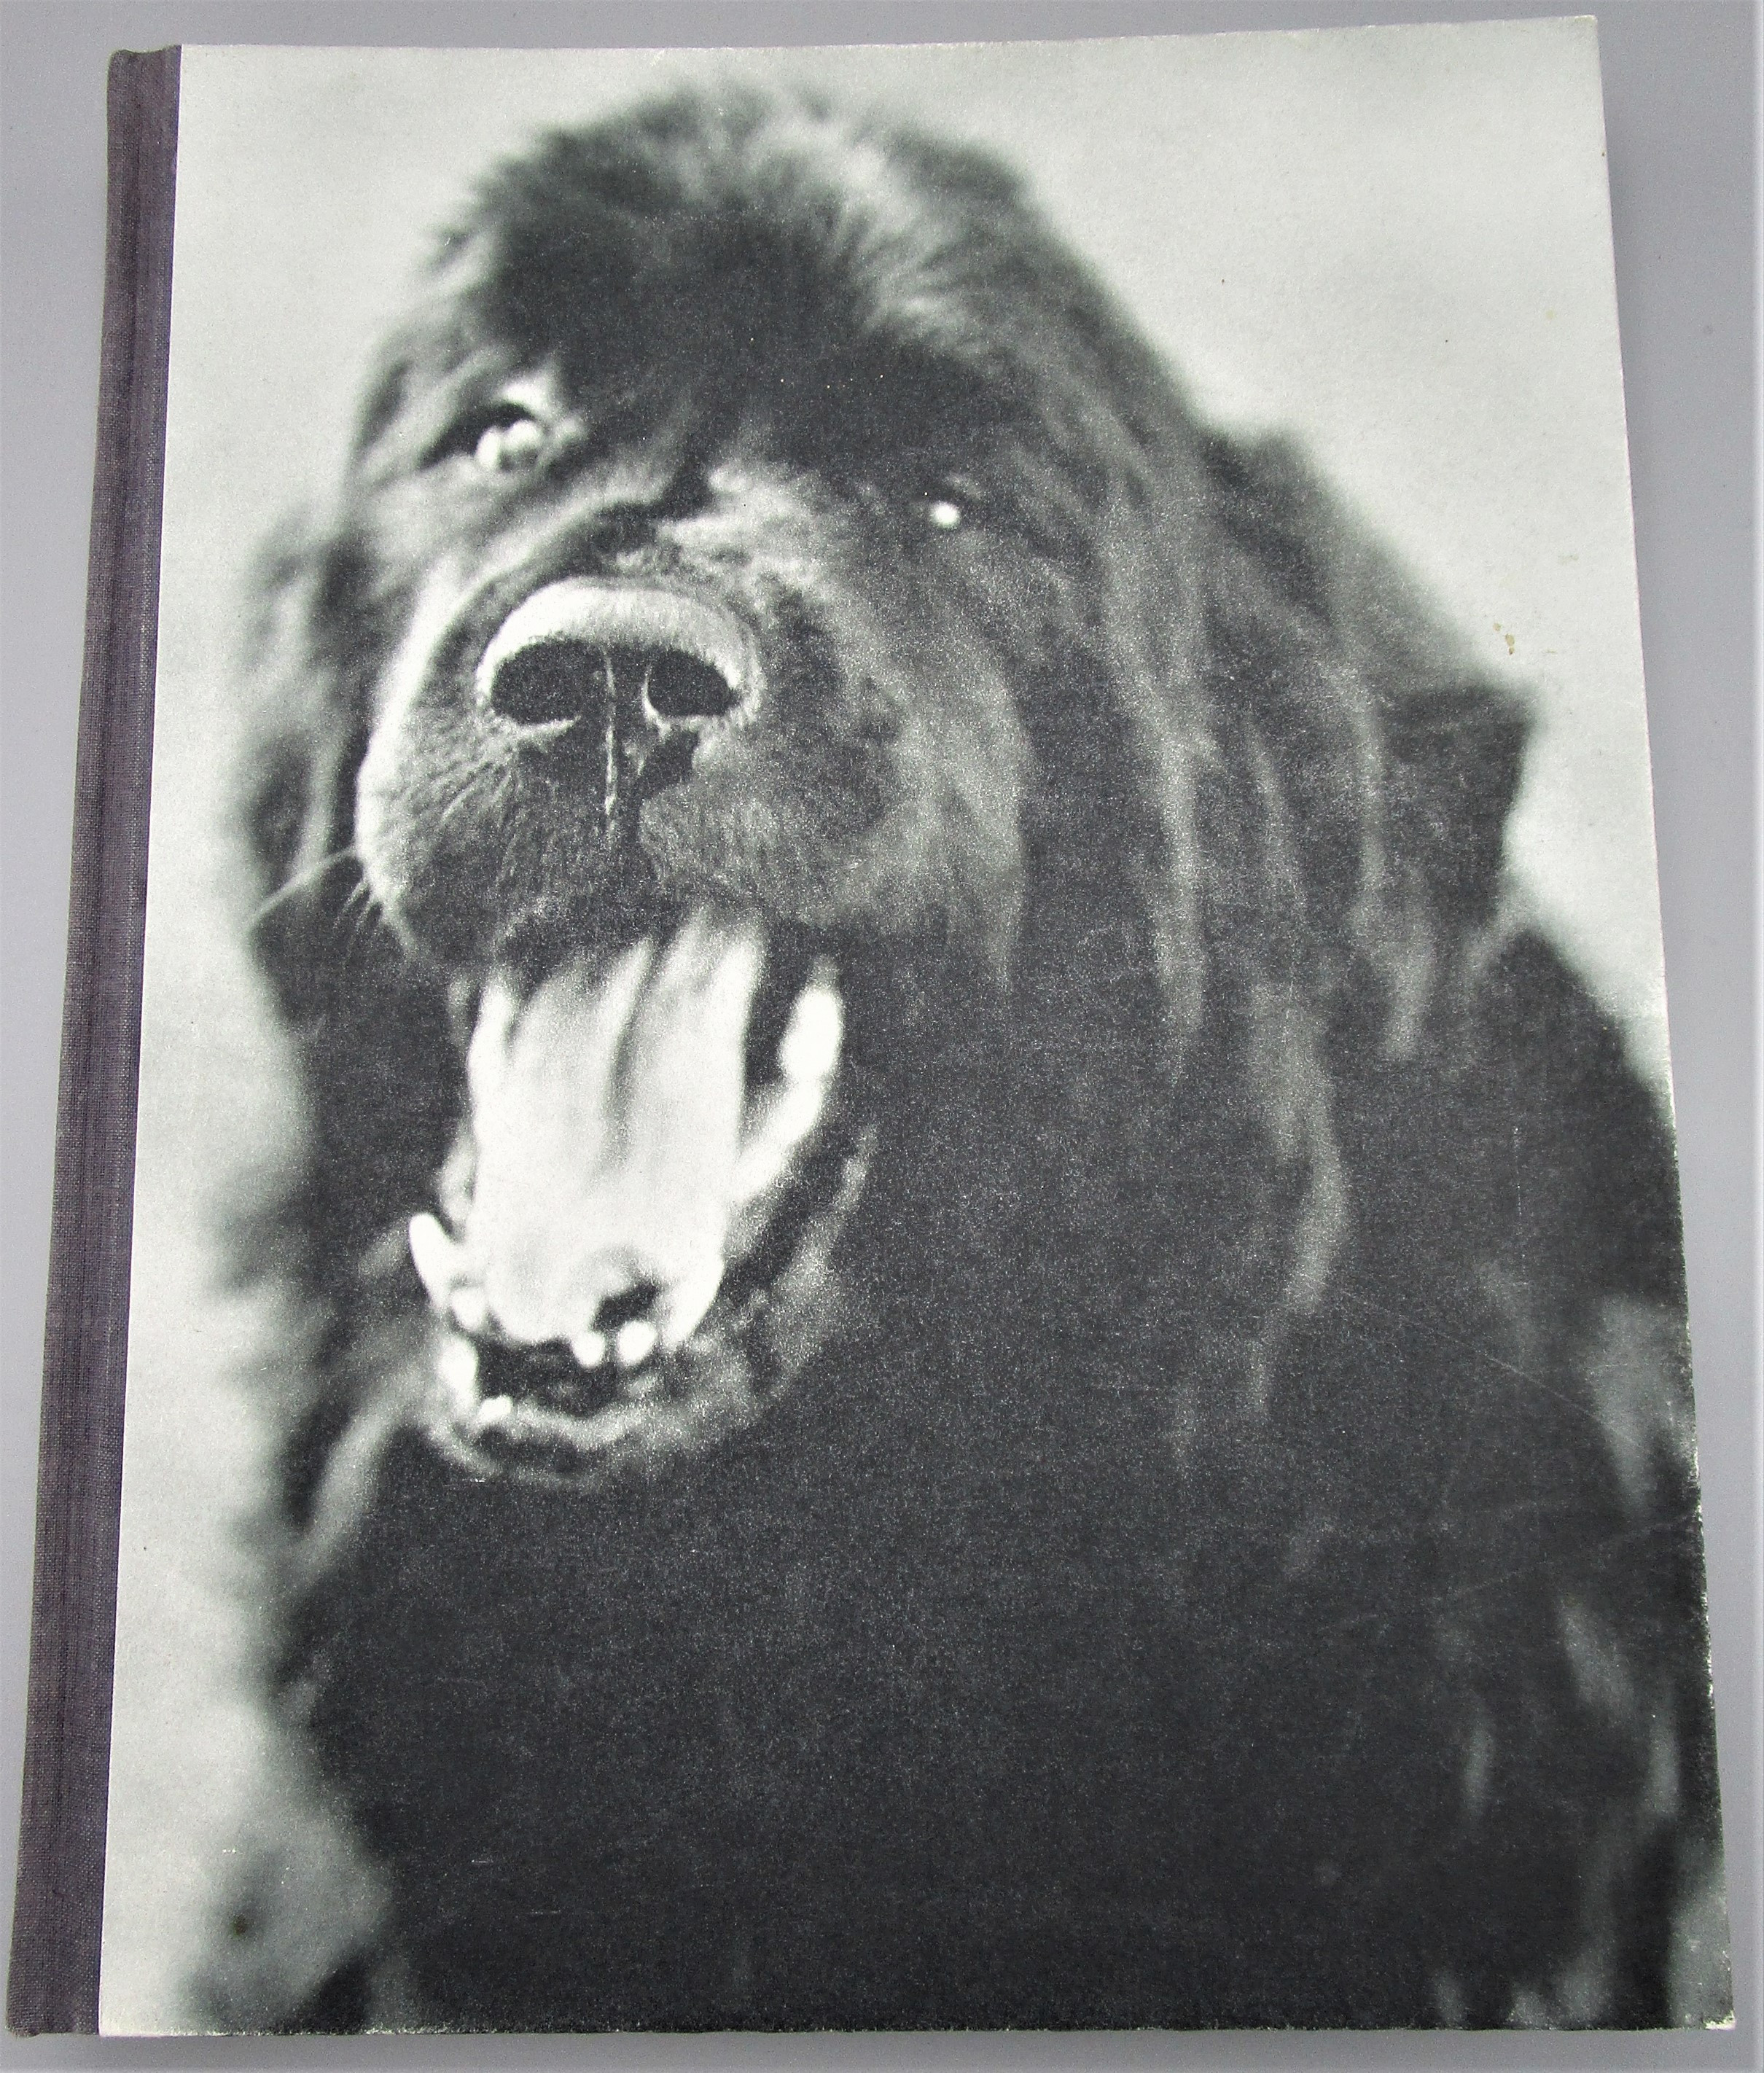 GENTLE GIANTS: A BOOK OF NEWFOUNDLANDS, by Bruce Weber - 1994 1st Edition